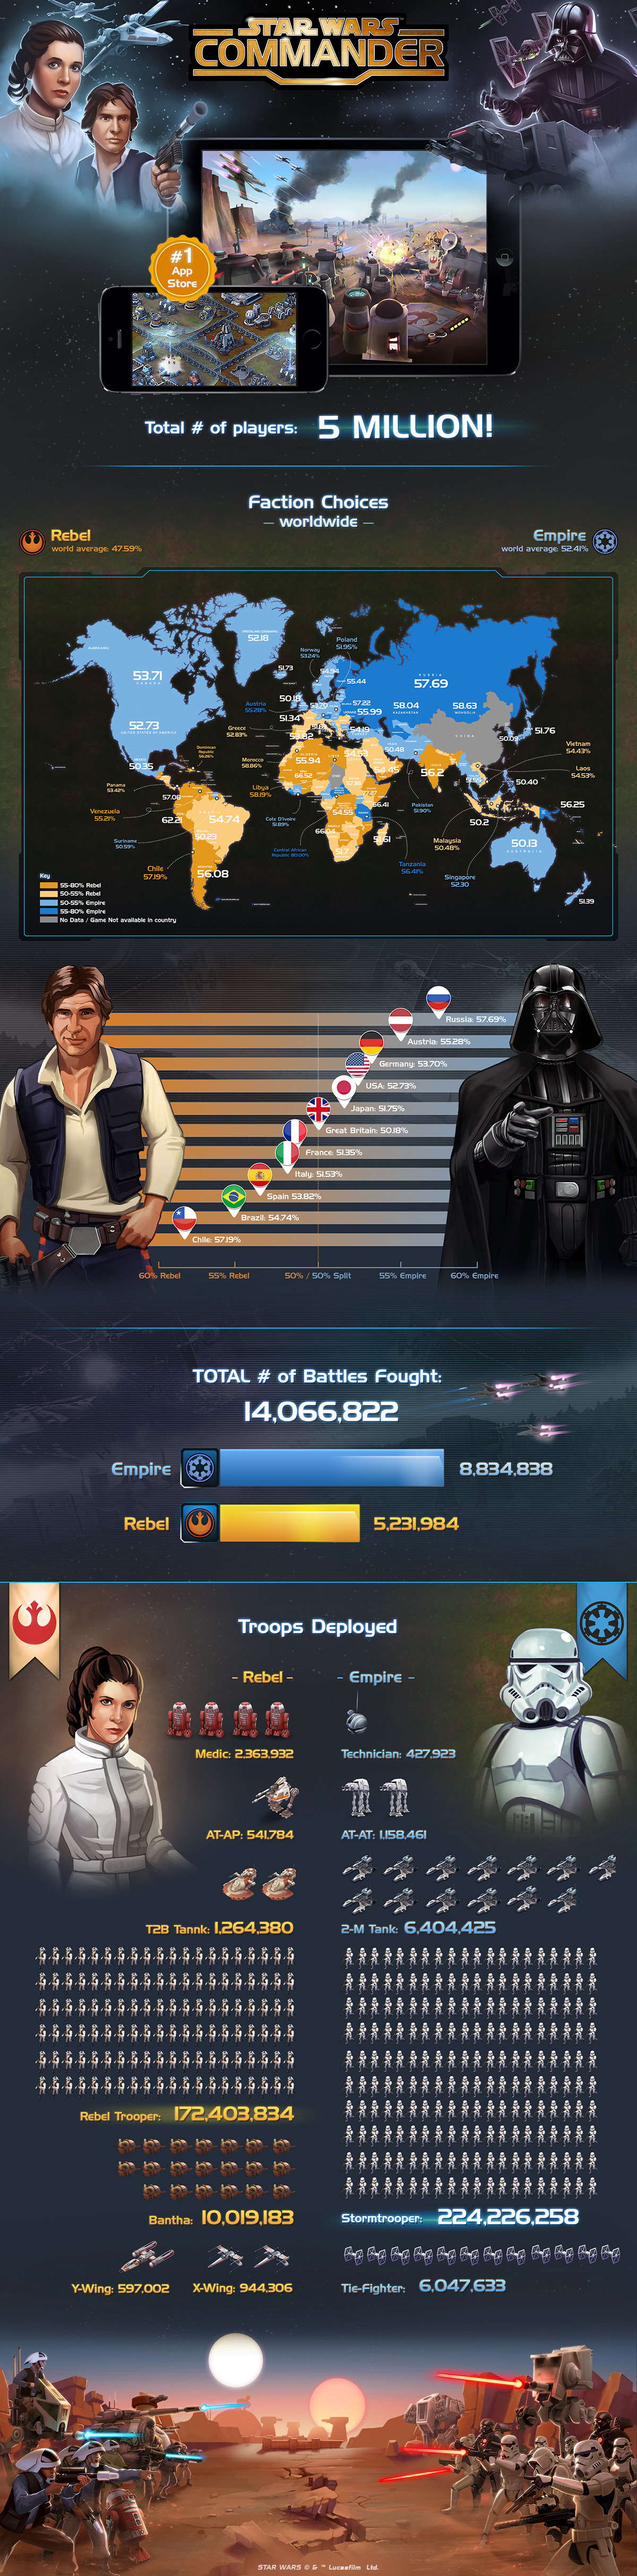 Star Wars: Commander Info Graphic